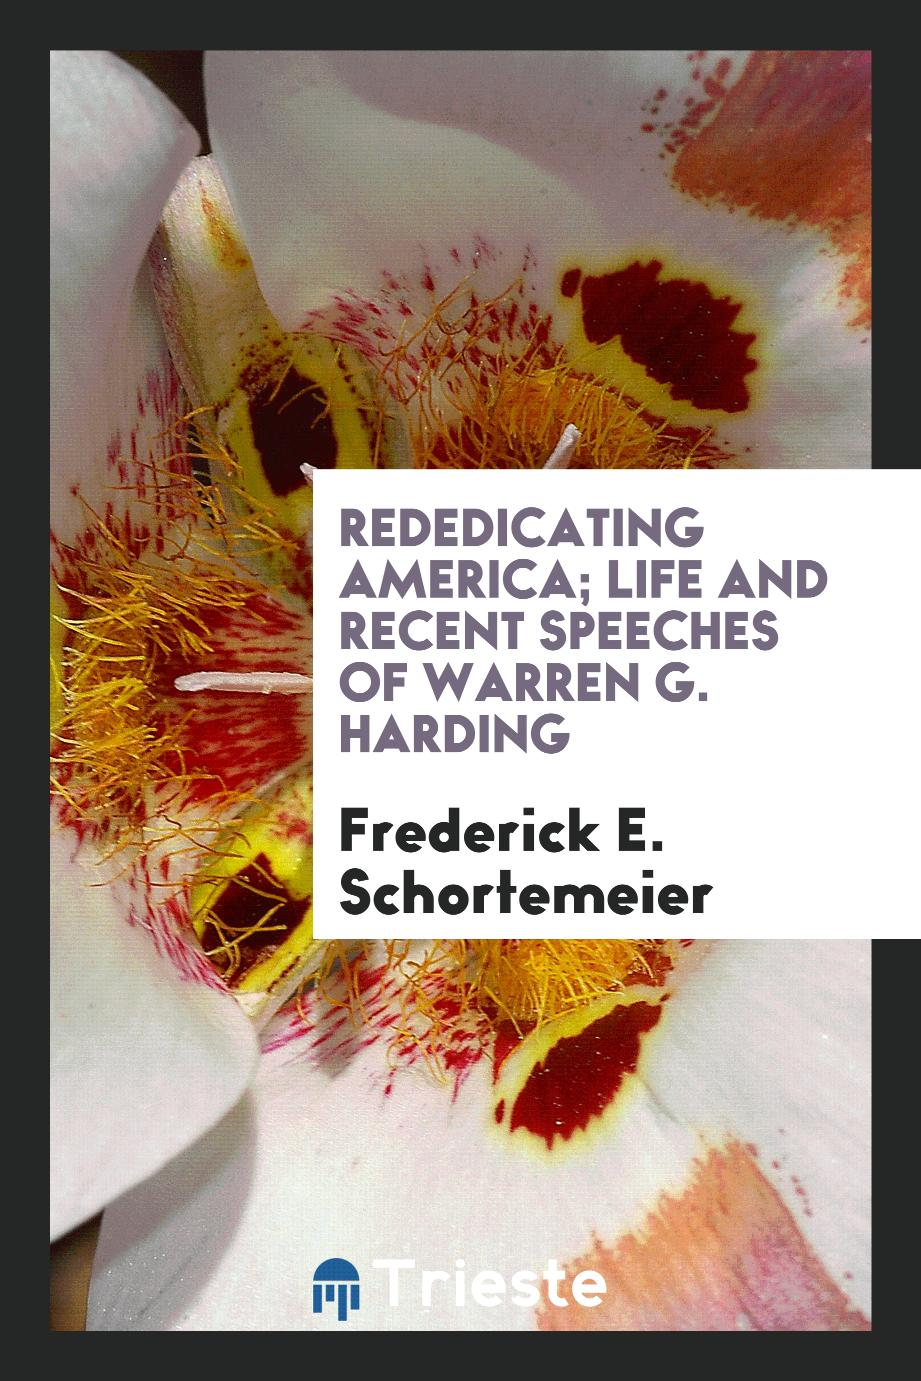 Rededicating America; life and recent speeches of Warren G. Harding